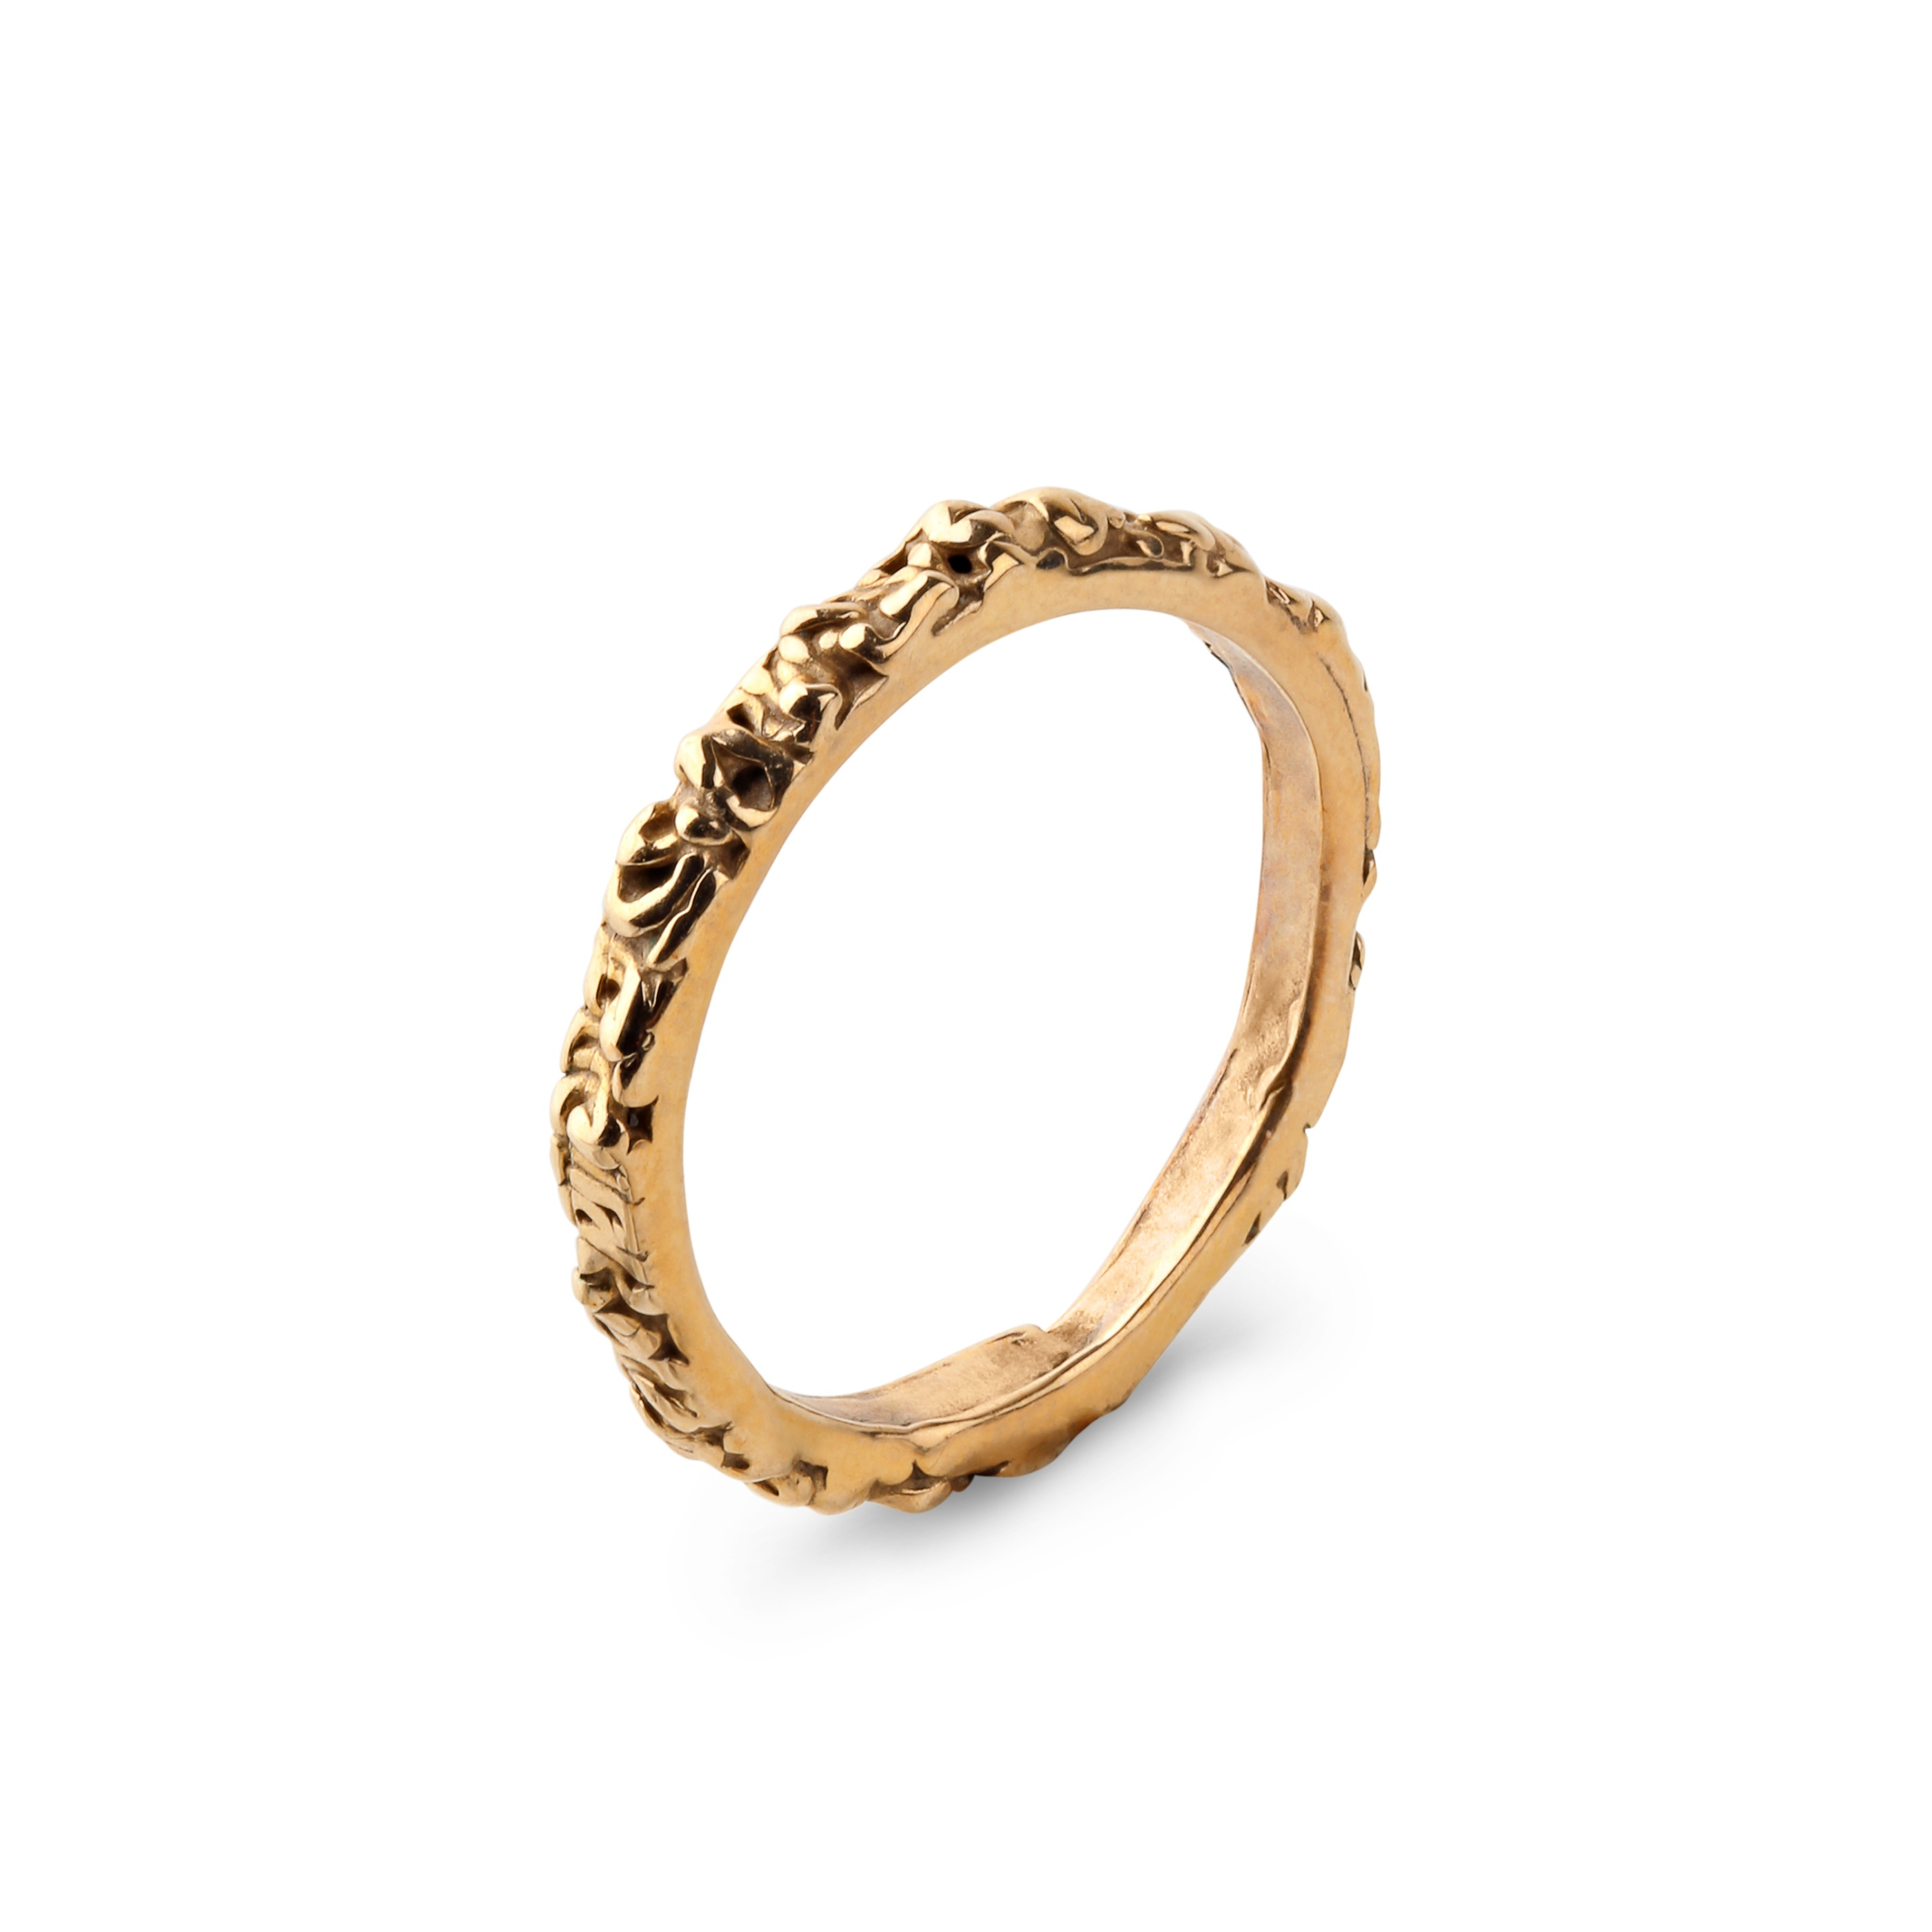 Thin band golden ring.